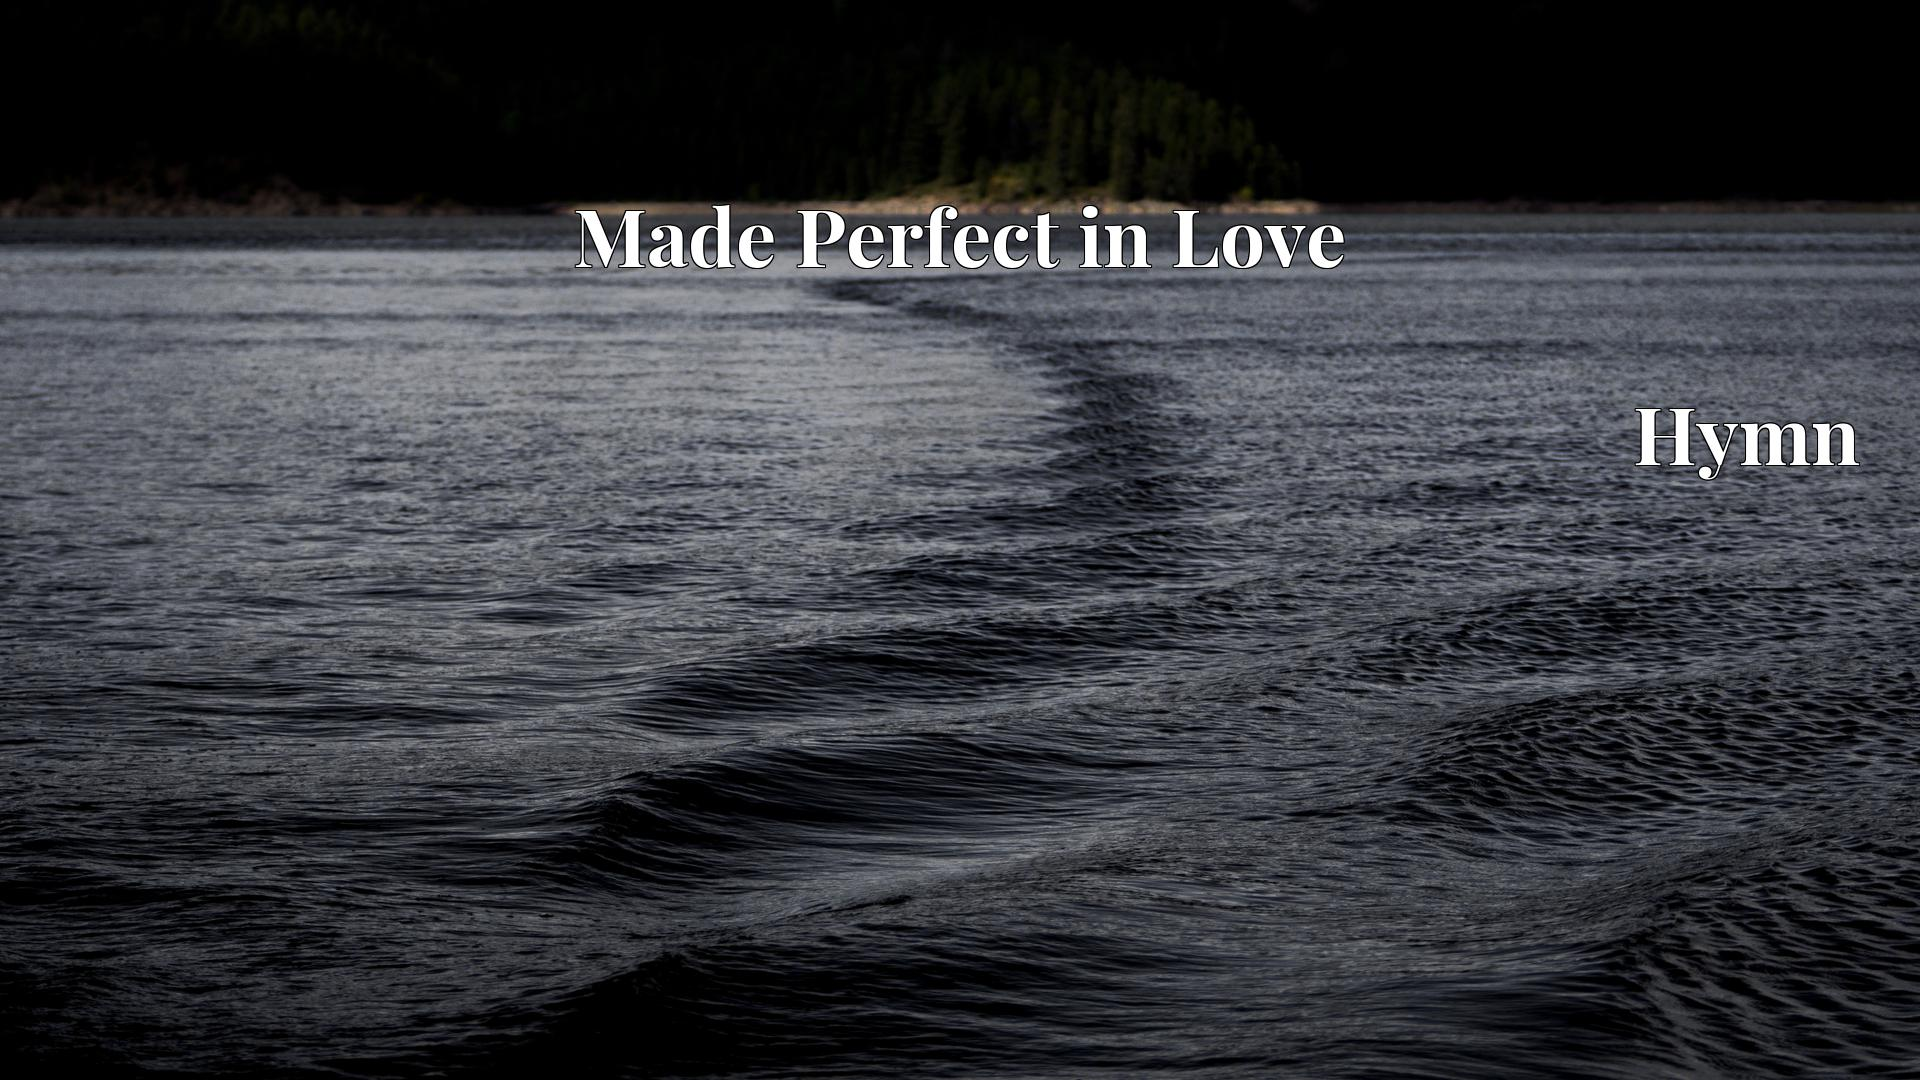 Made Perfect in Love Hymn